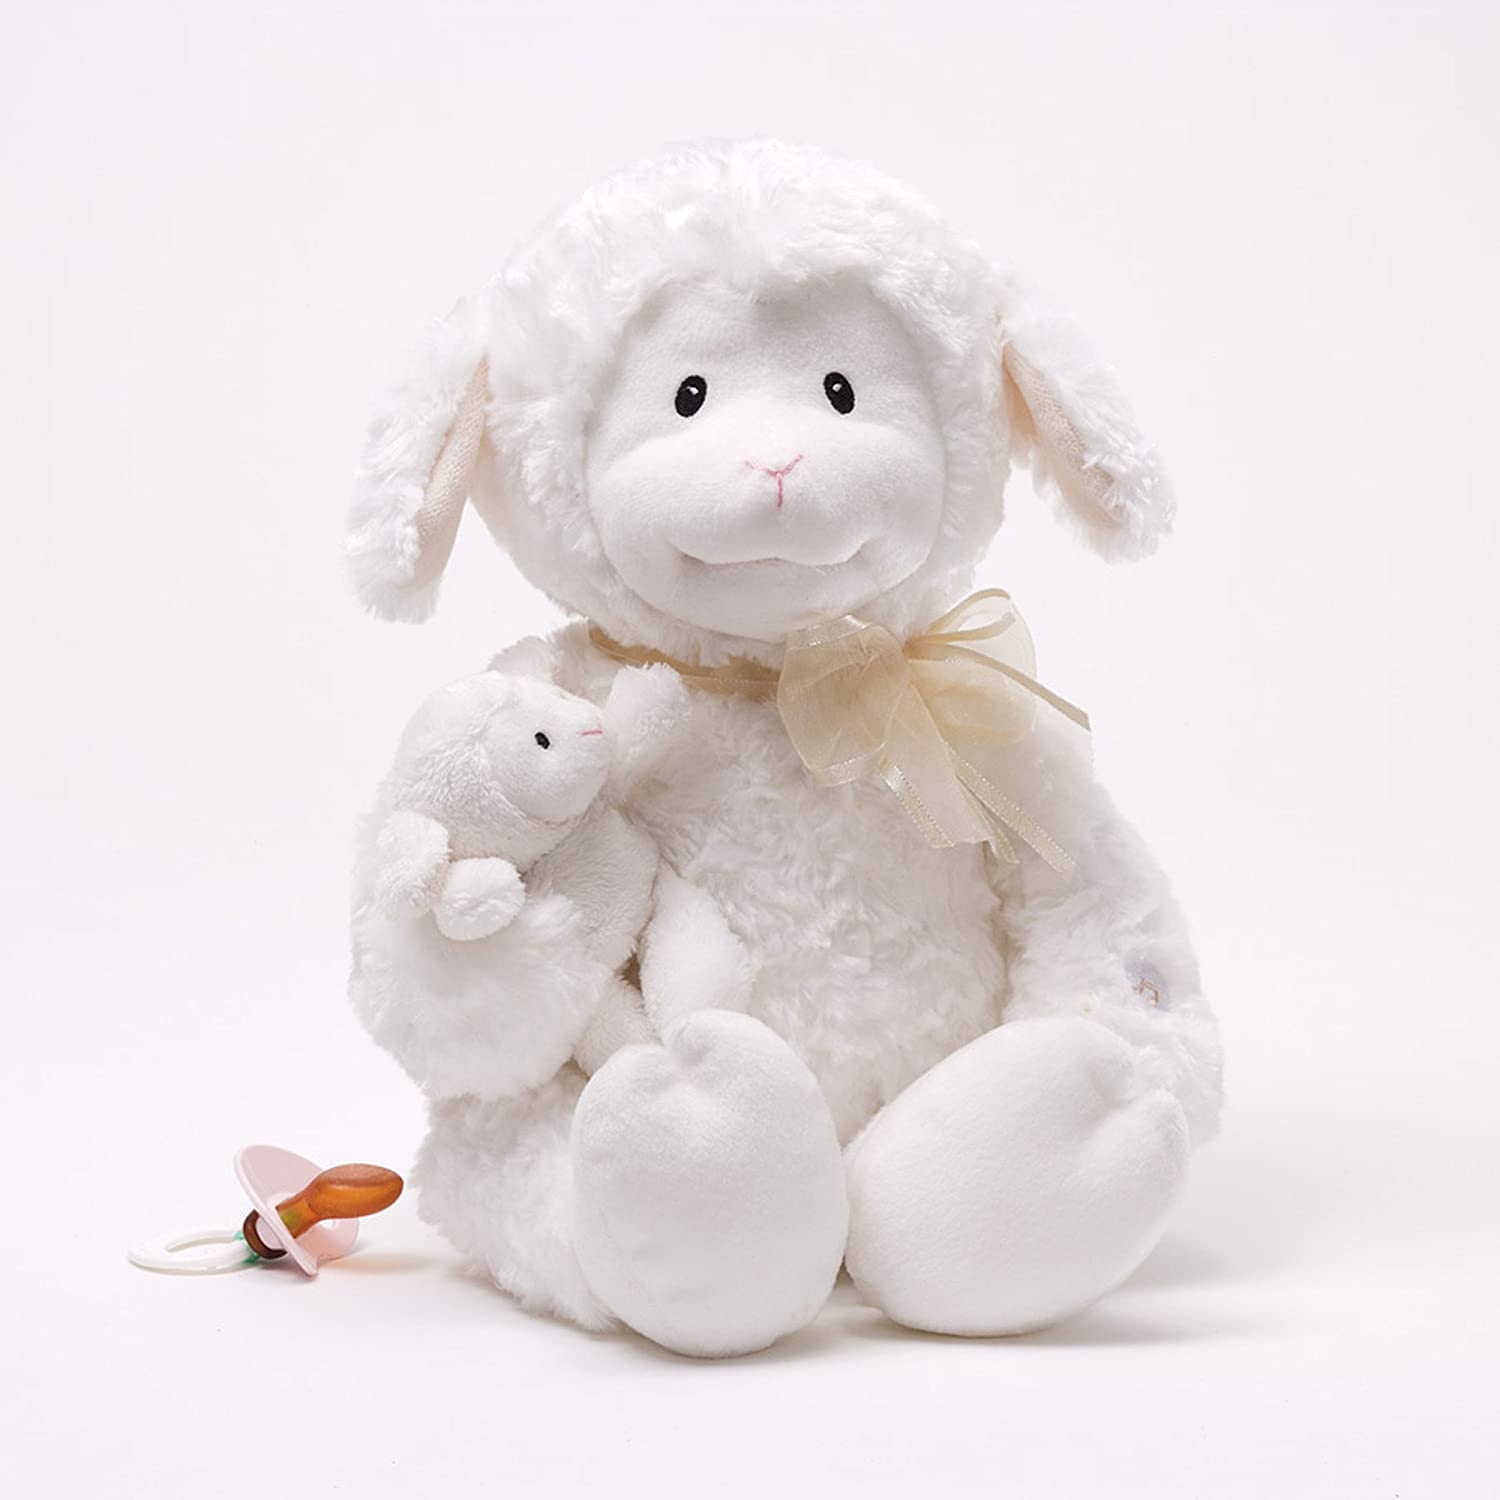 White 10 10 Rejects from Studios 320629 GUND Nursery Rhyme Time Lamb Animated Stuffed Animal Plush